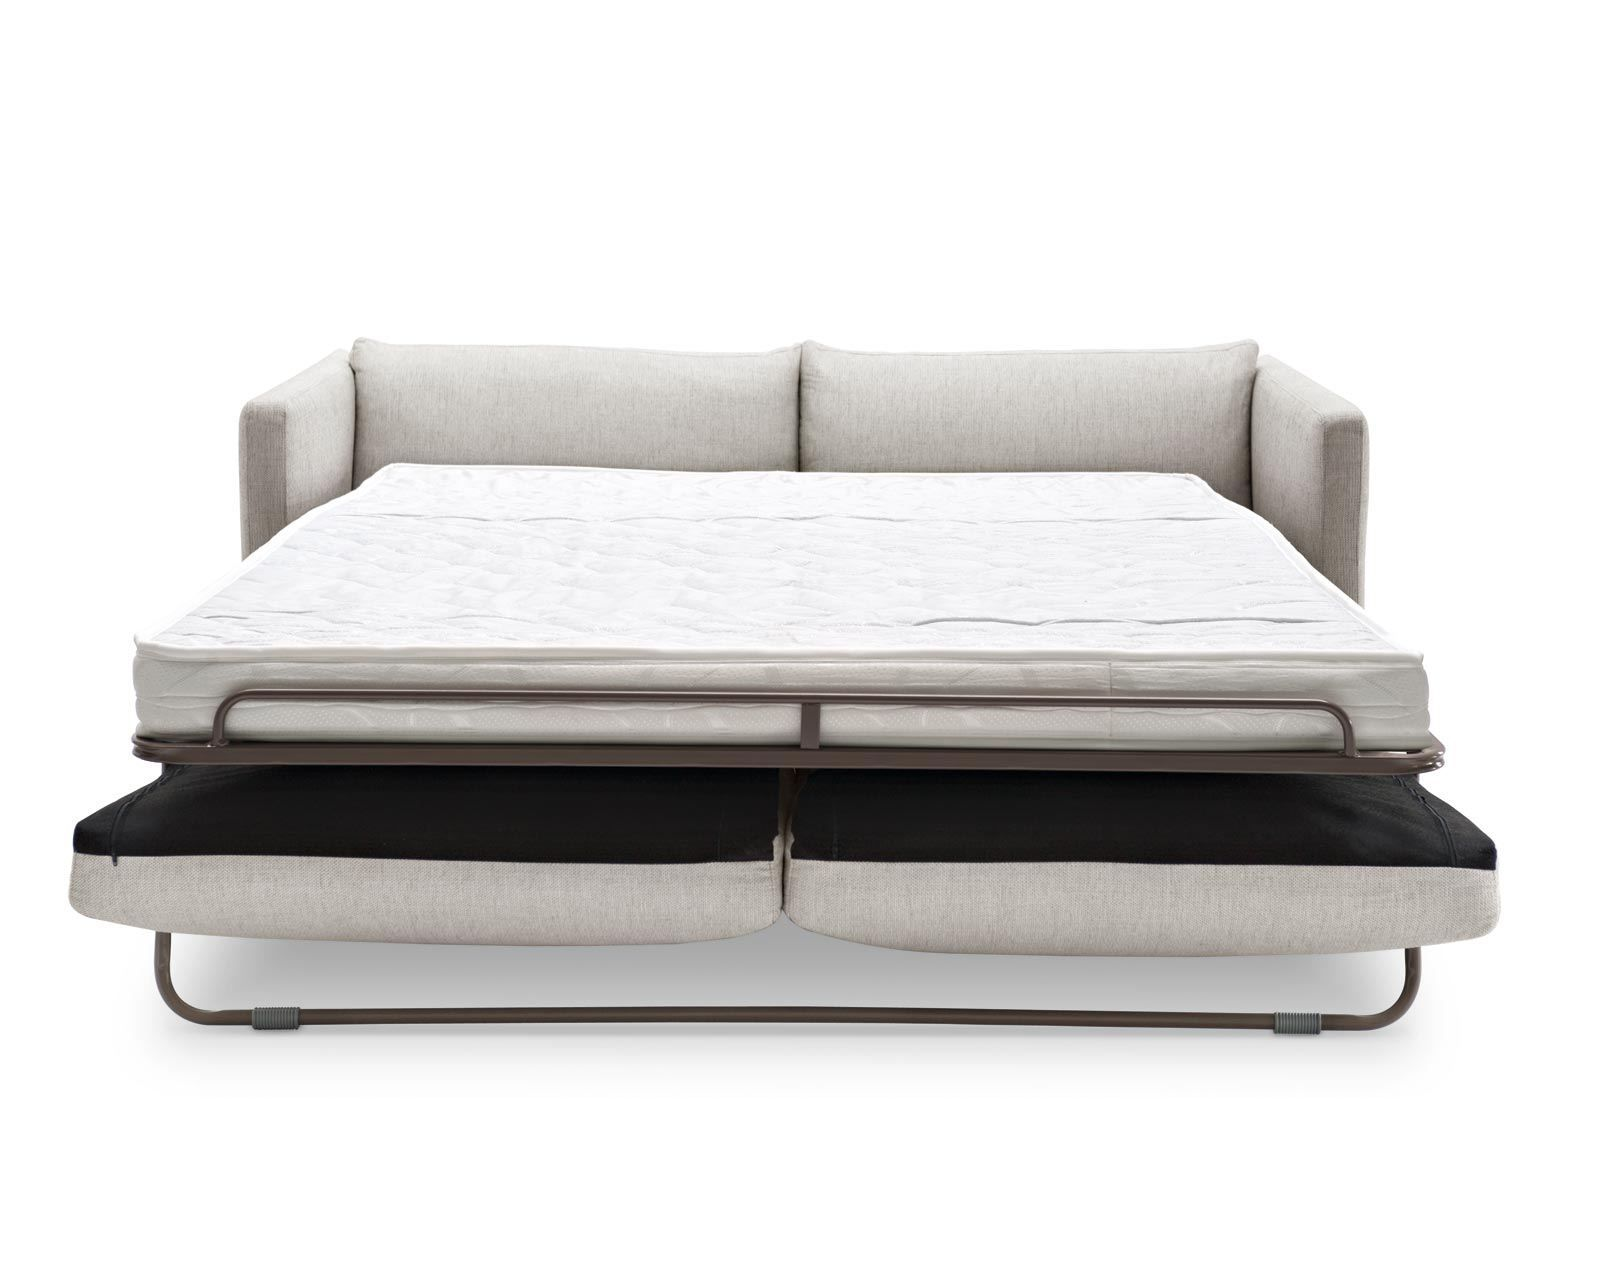 Cool Pull Out Queen Sofa Bed Fancy Pull Out Queen Sofa Bed 54